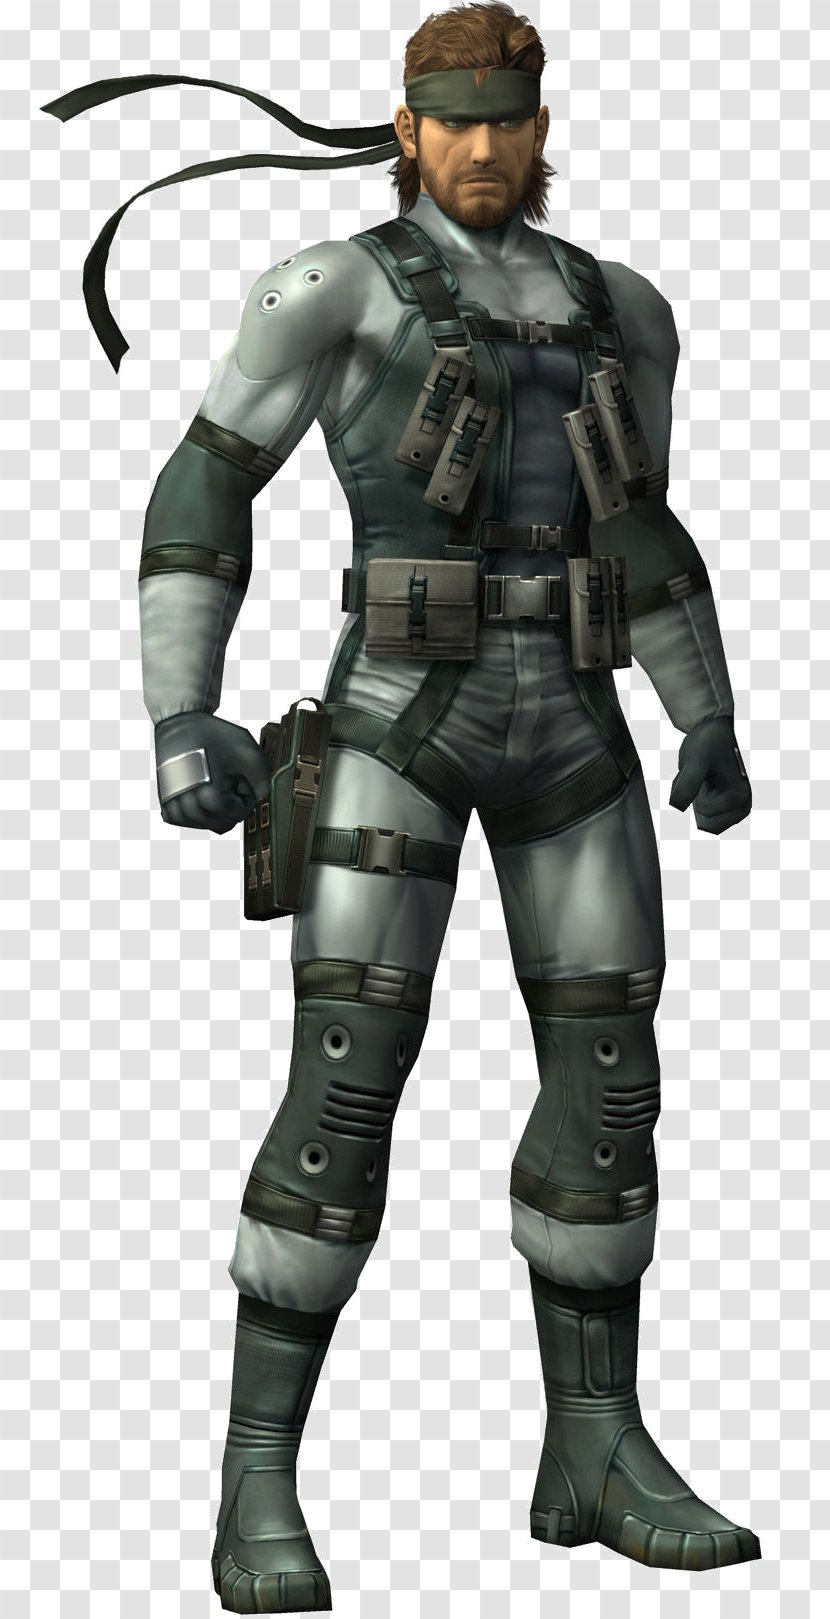 Metal Gear Solid 2: Sons Of Liberty Snake 3: Eater 4: Guns The Patriots - Weapon - Transparent Transparent PNG